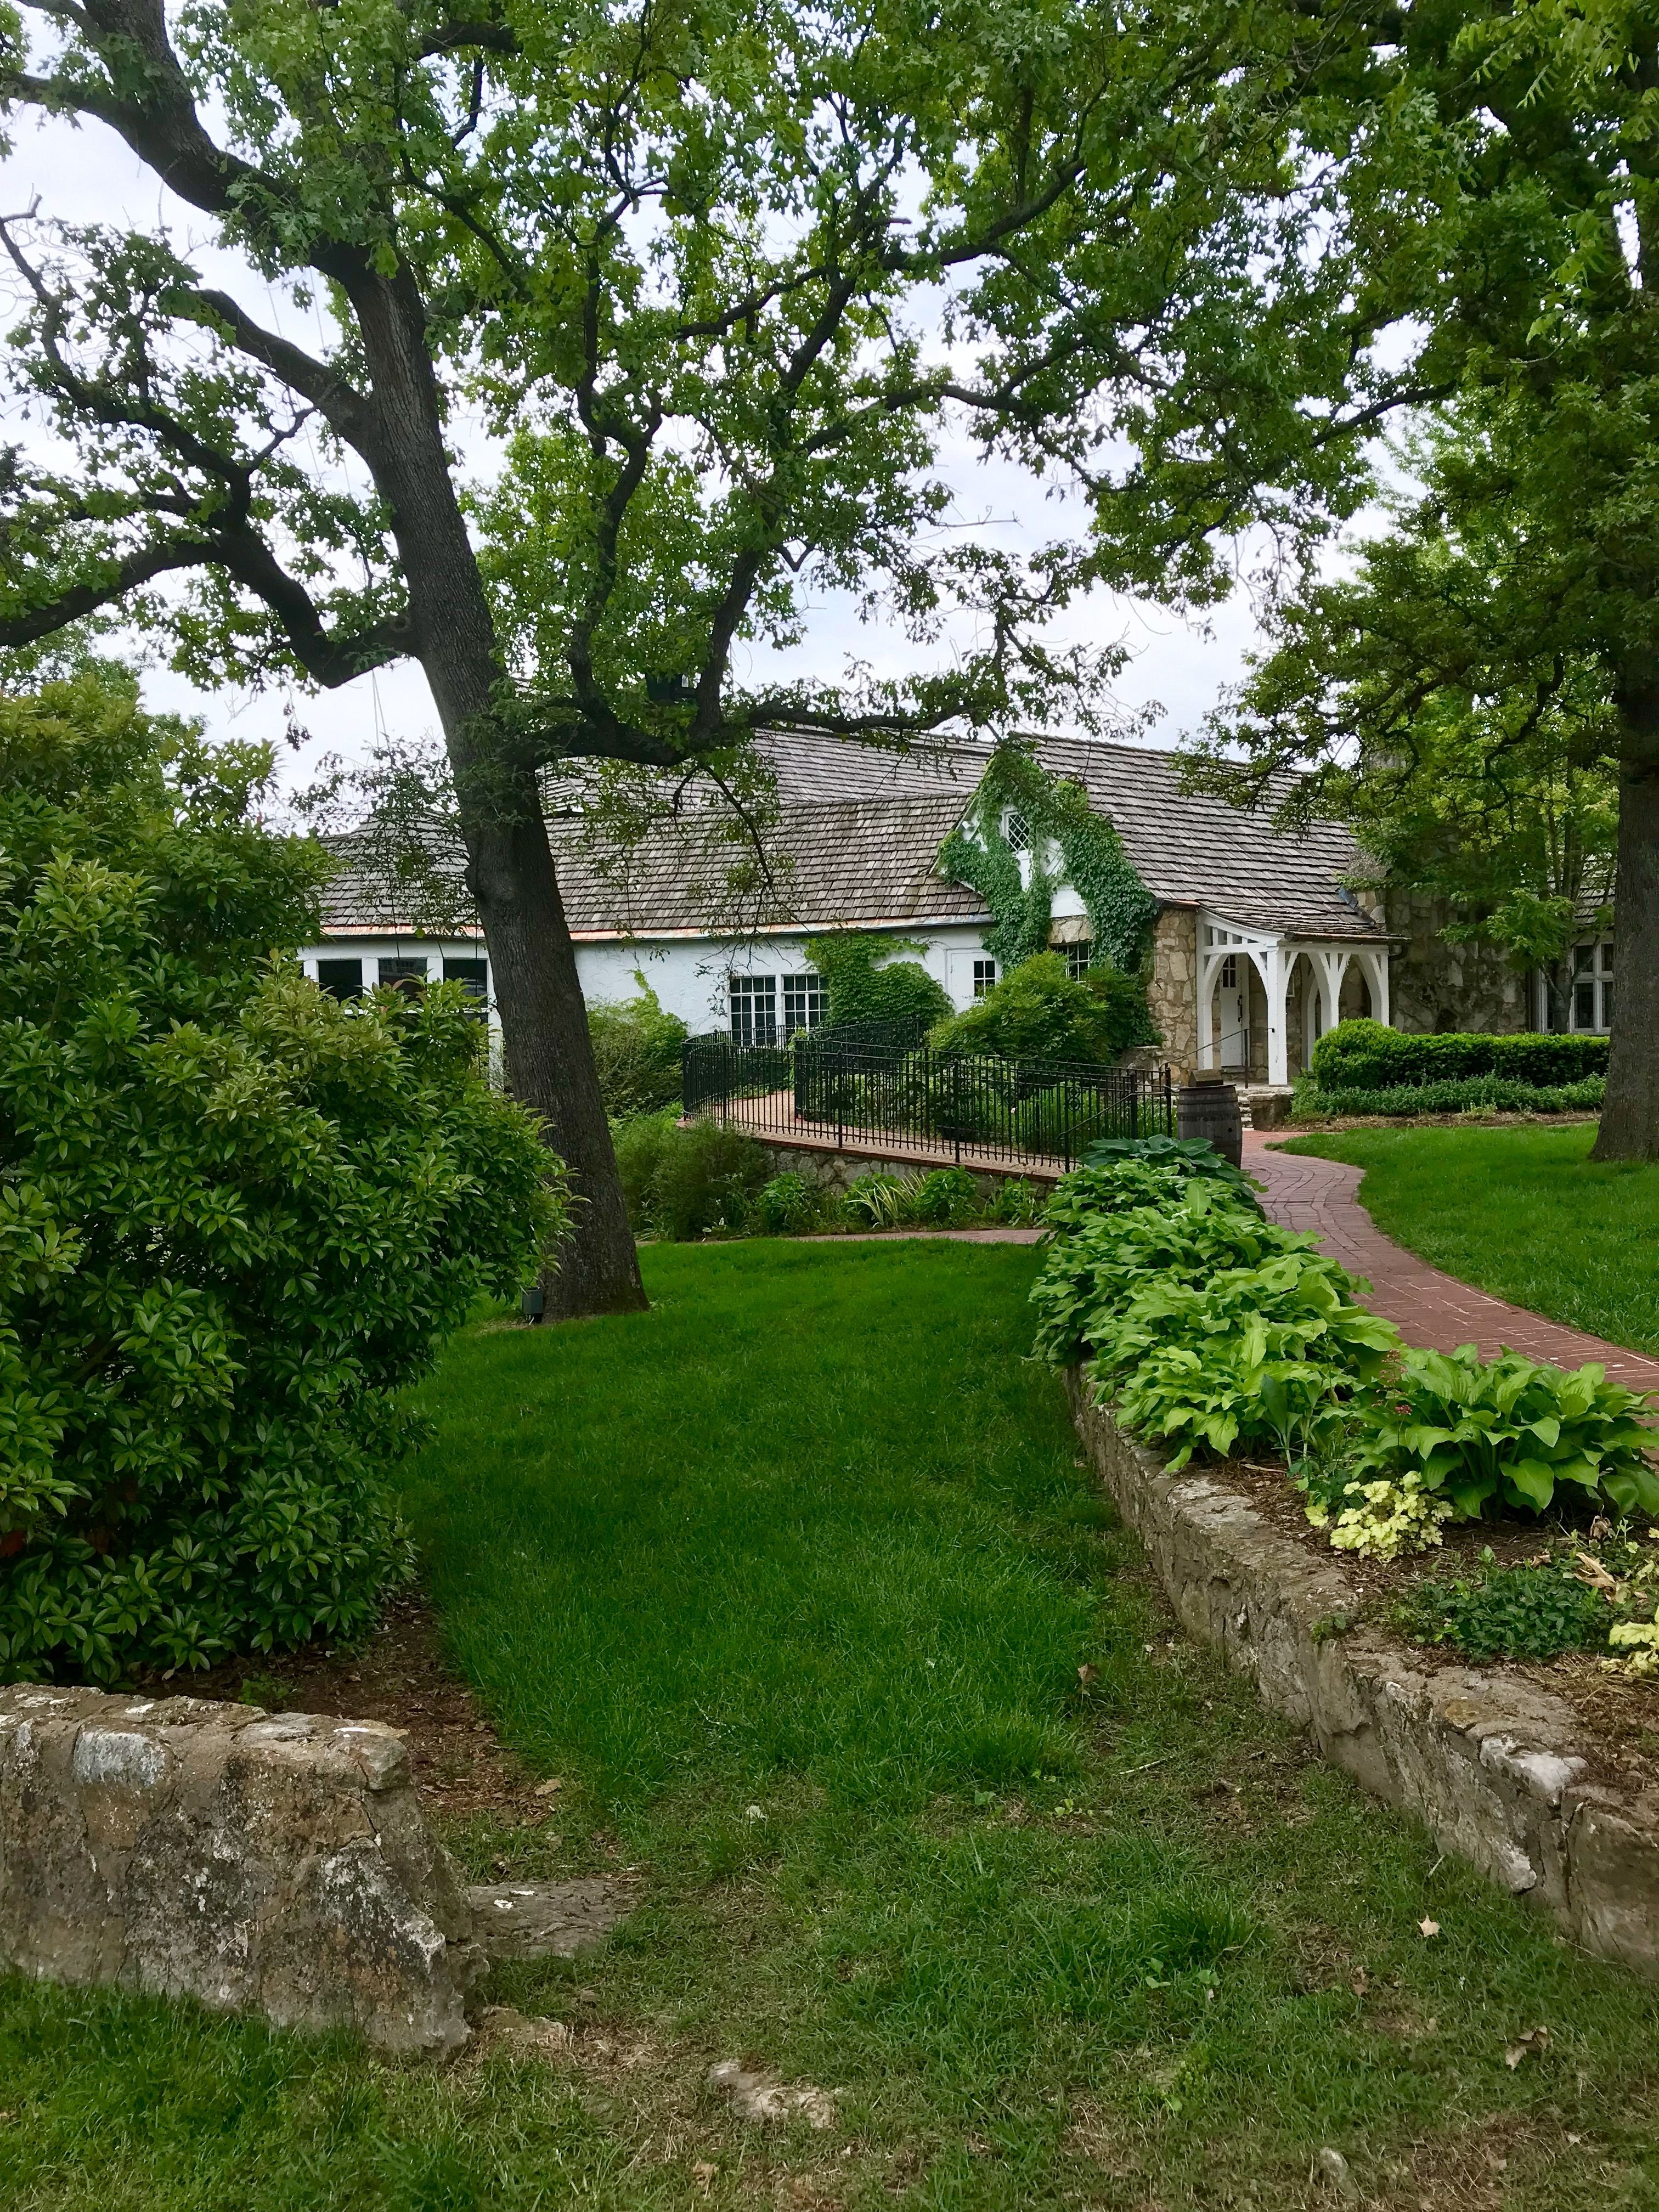 Old Stone House Old Stone Walls Lush Green Landscape Ivy Old Stone Houses Green Landscape Stone Wall